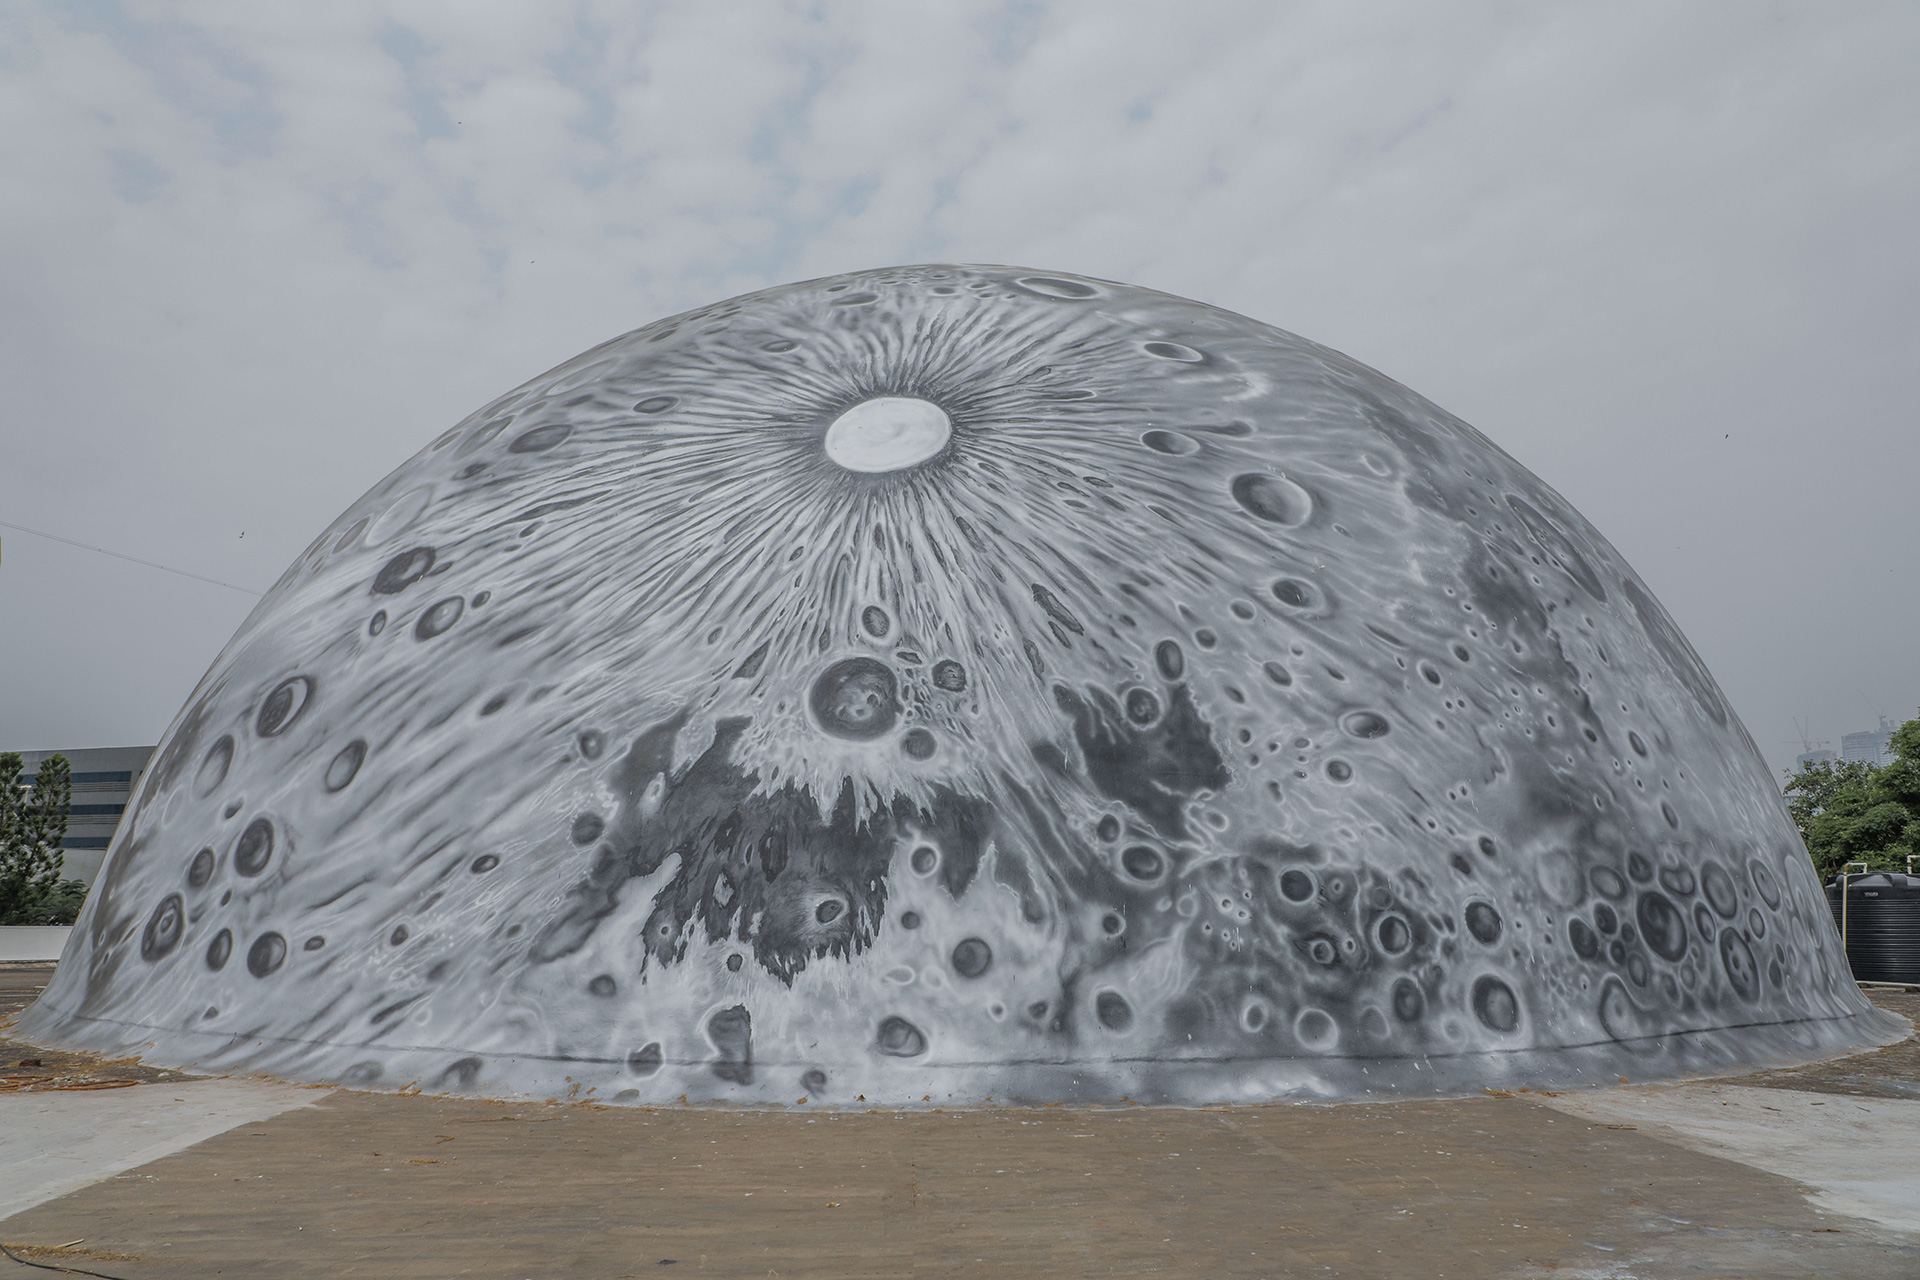 The Lunar Dome up close | Lunar Dome | Asian Paints | Sideways| St+Art| STIRworld